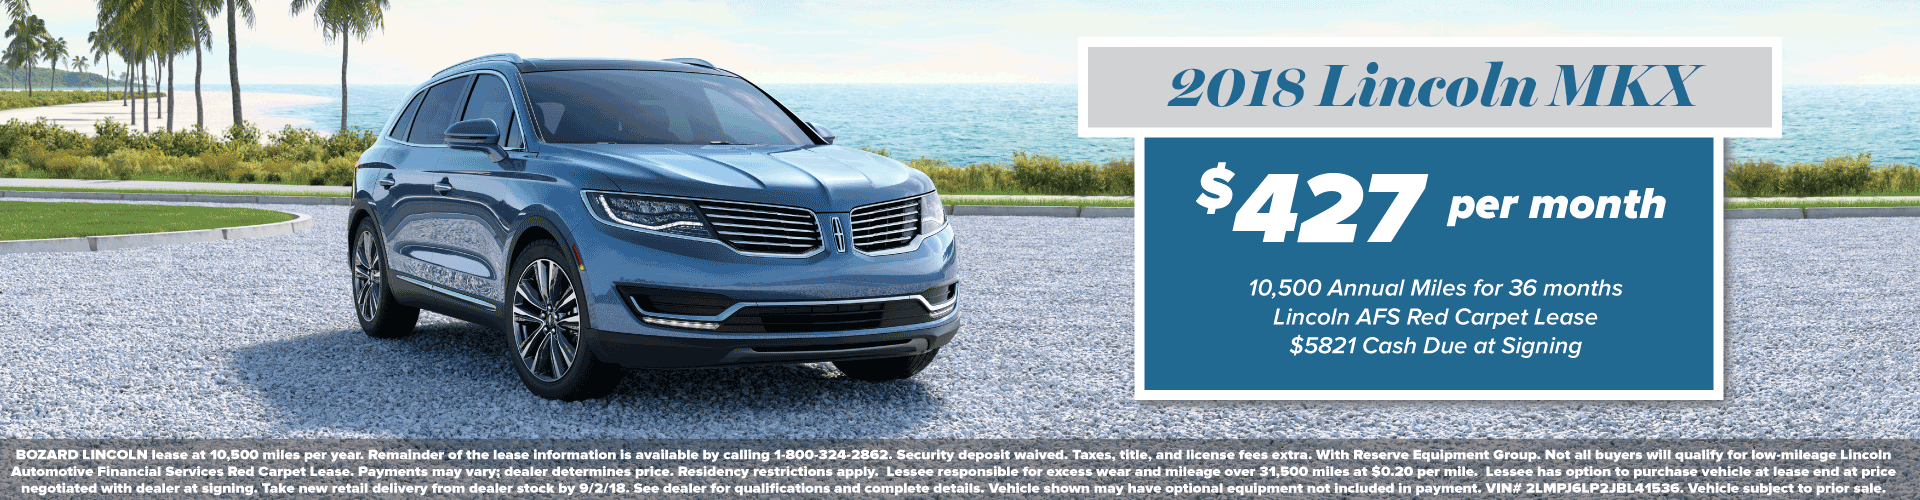 2018 Lincoln MKX Lease Offer